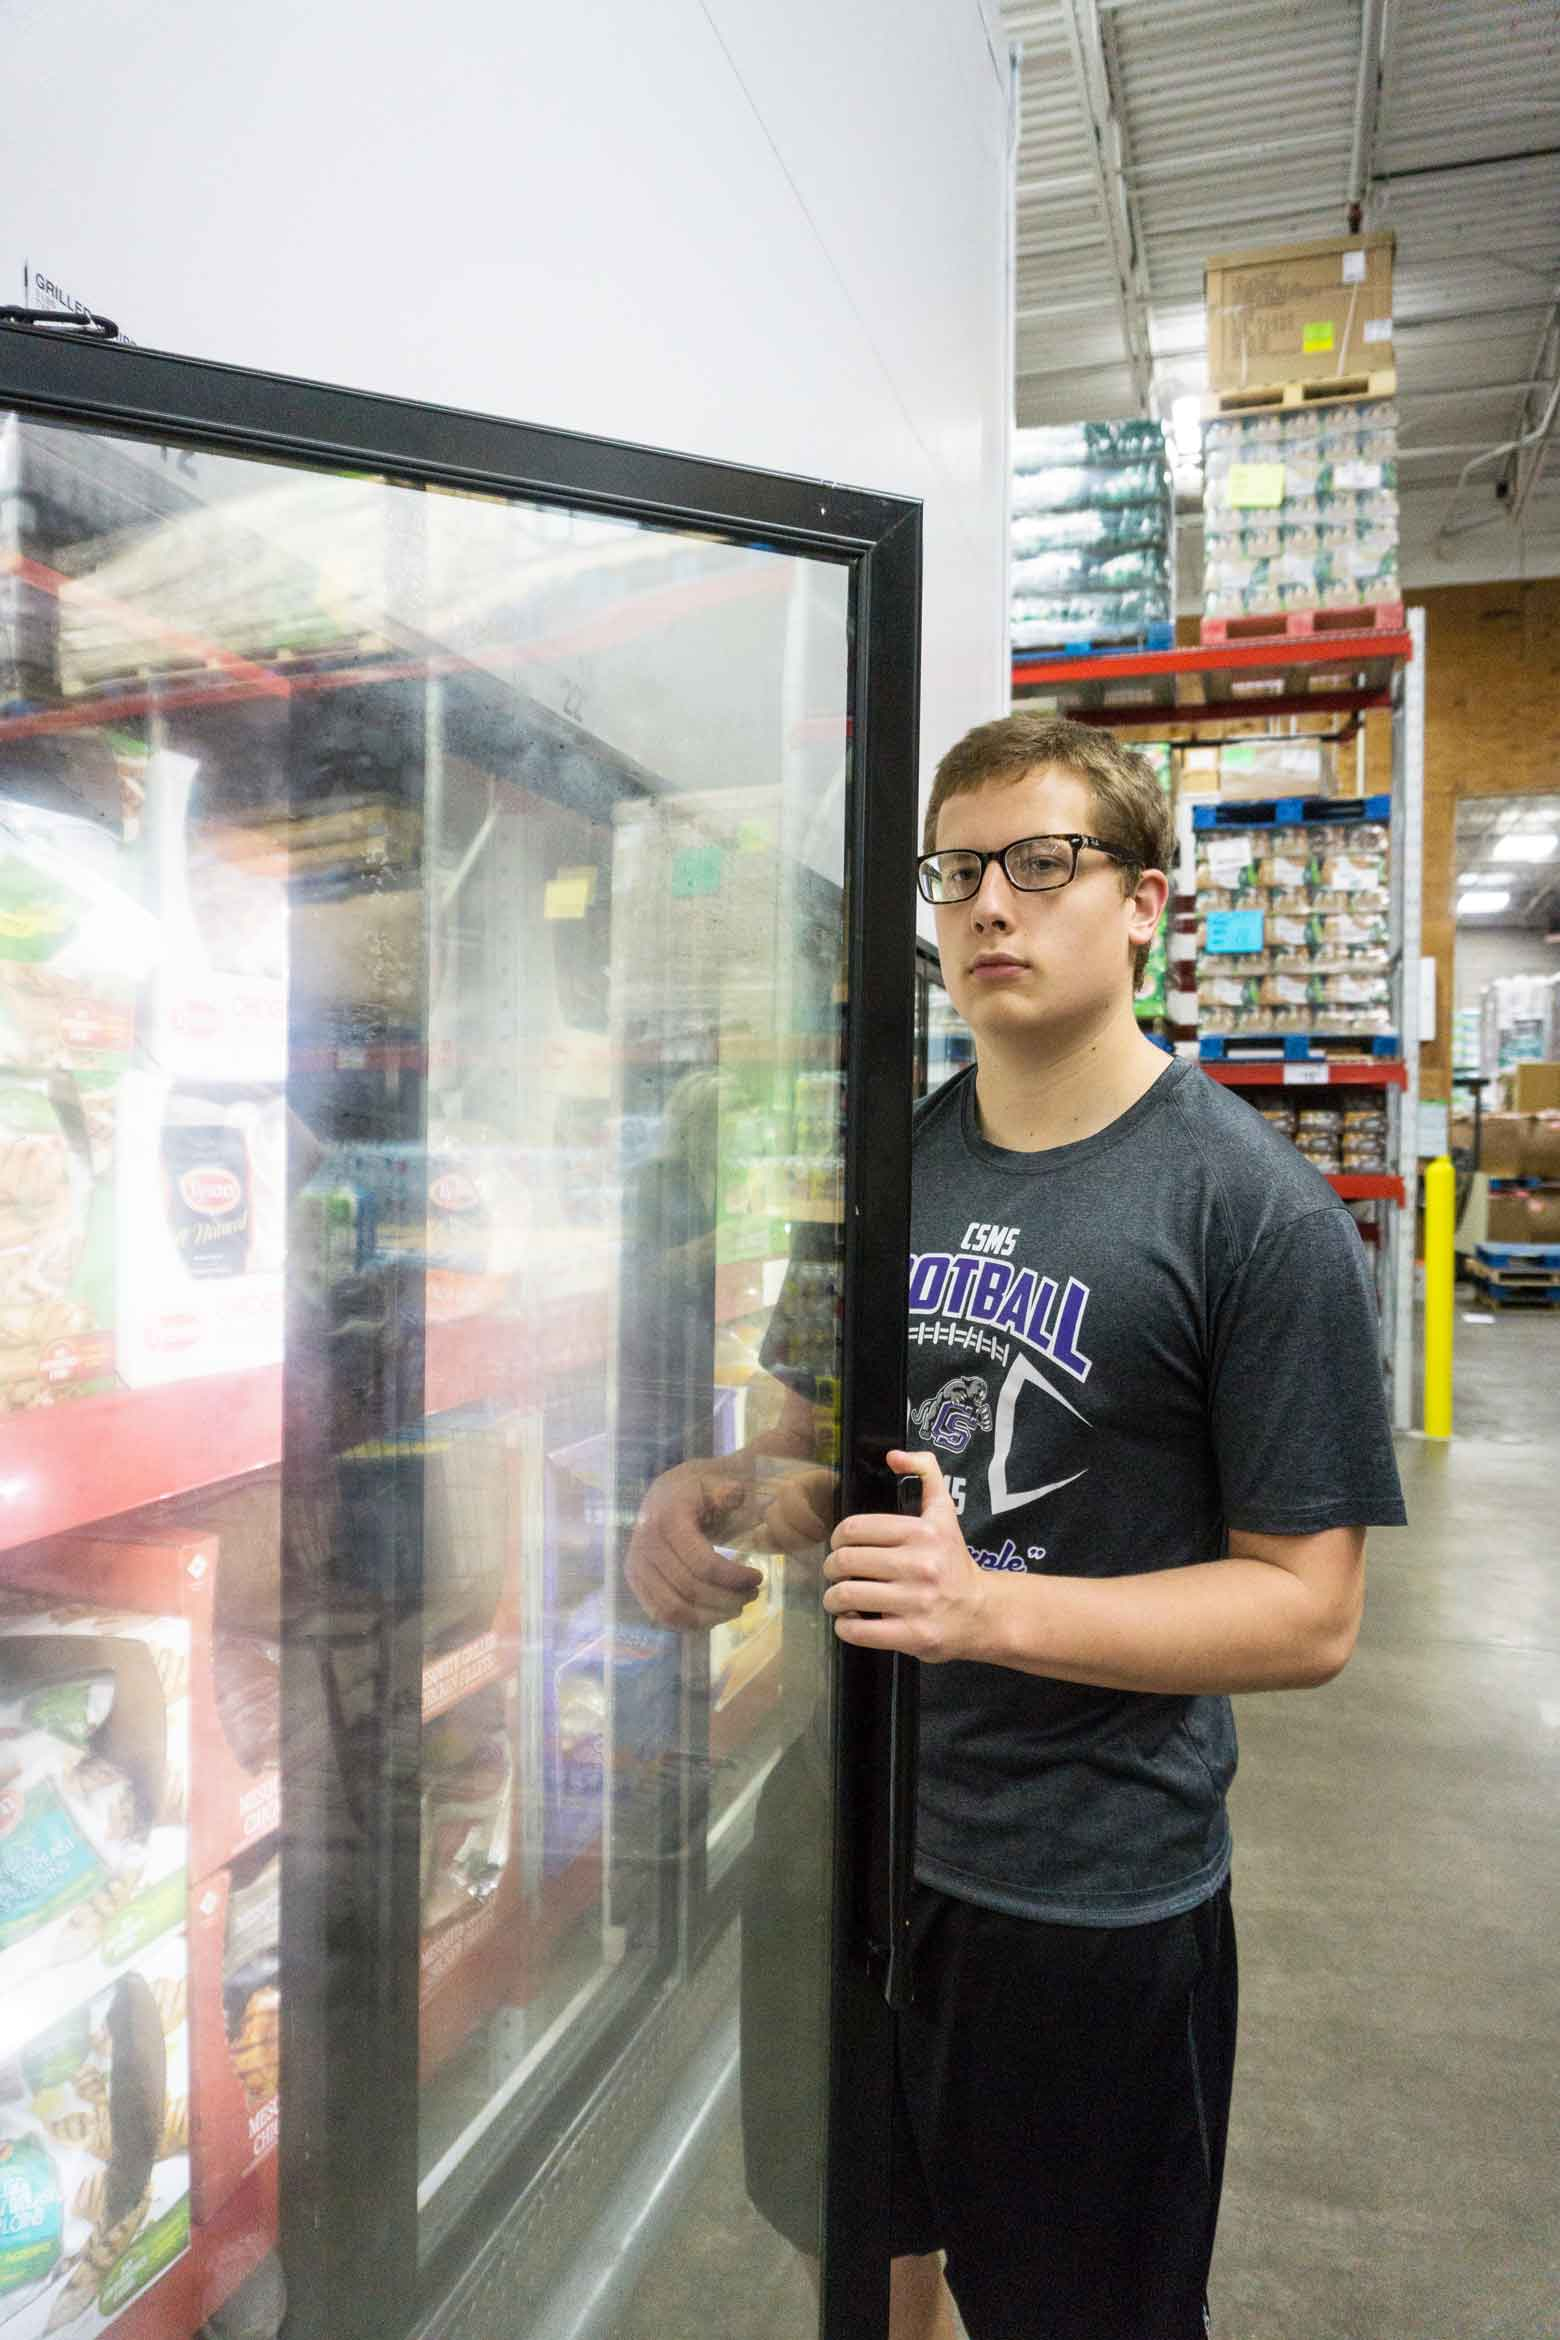 Shopping at Sam's Club with a teenage football player